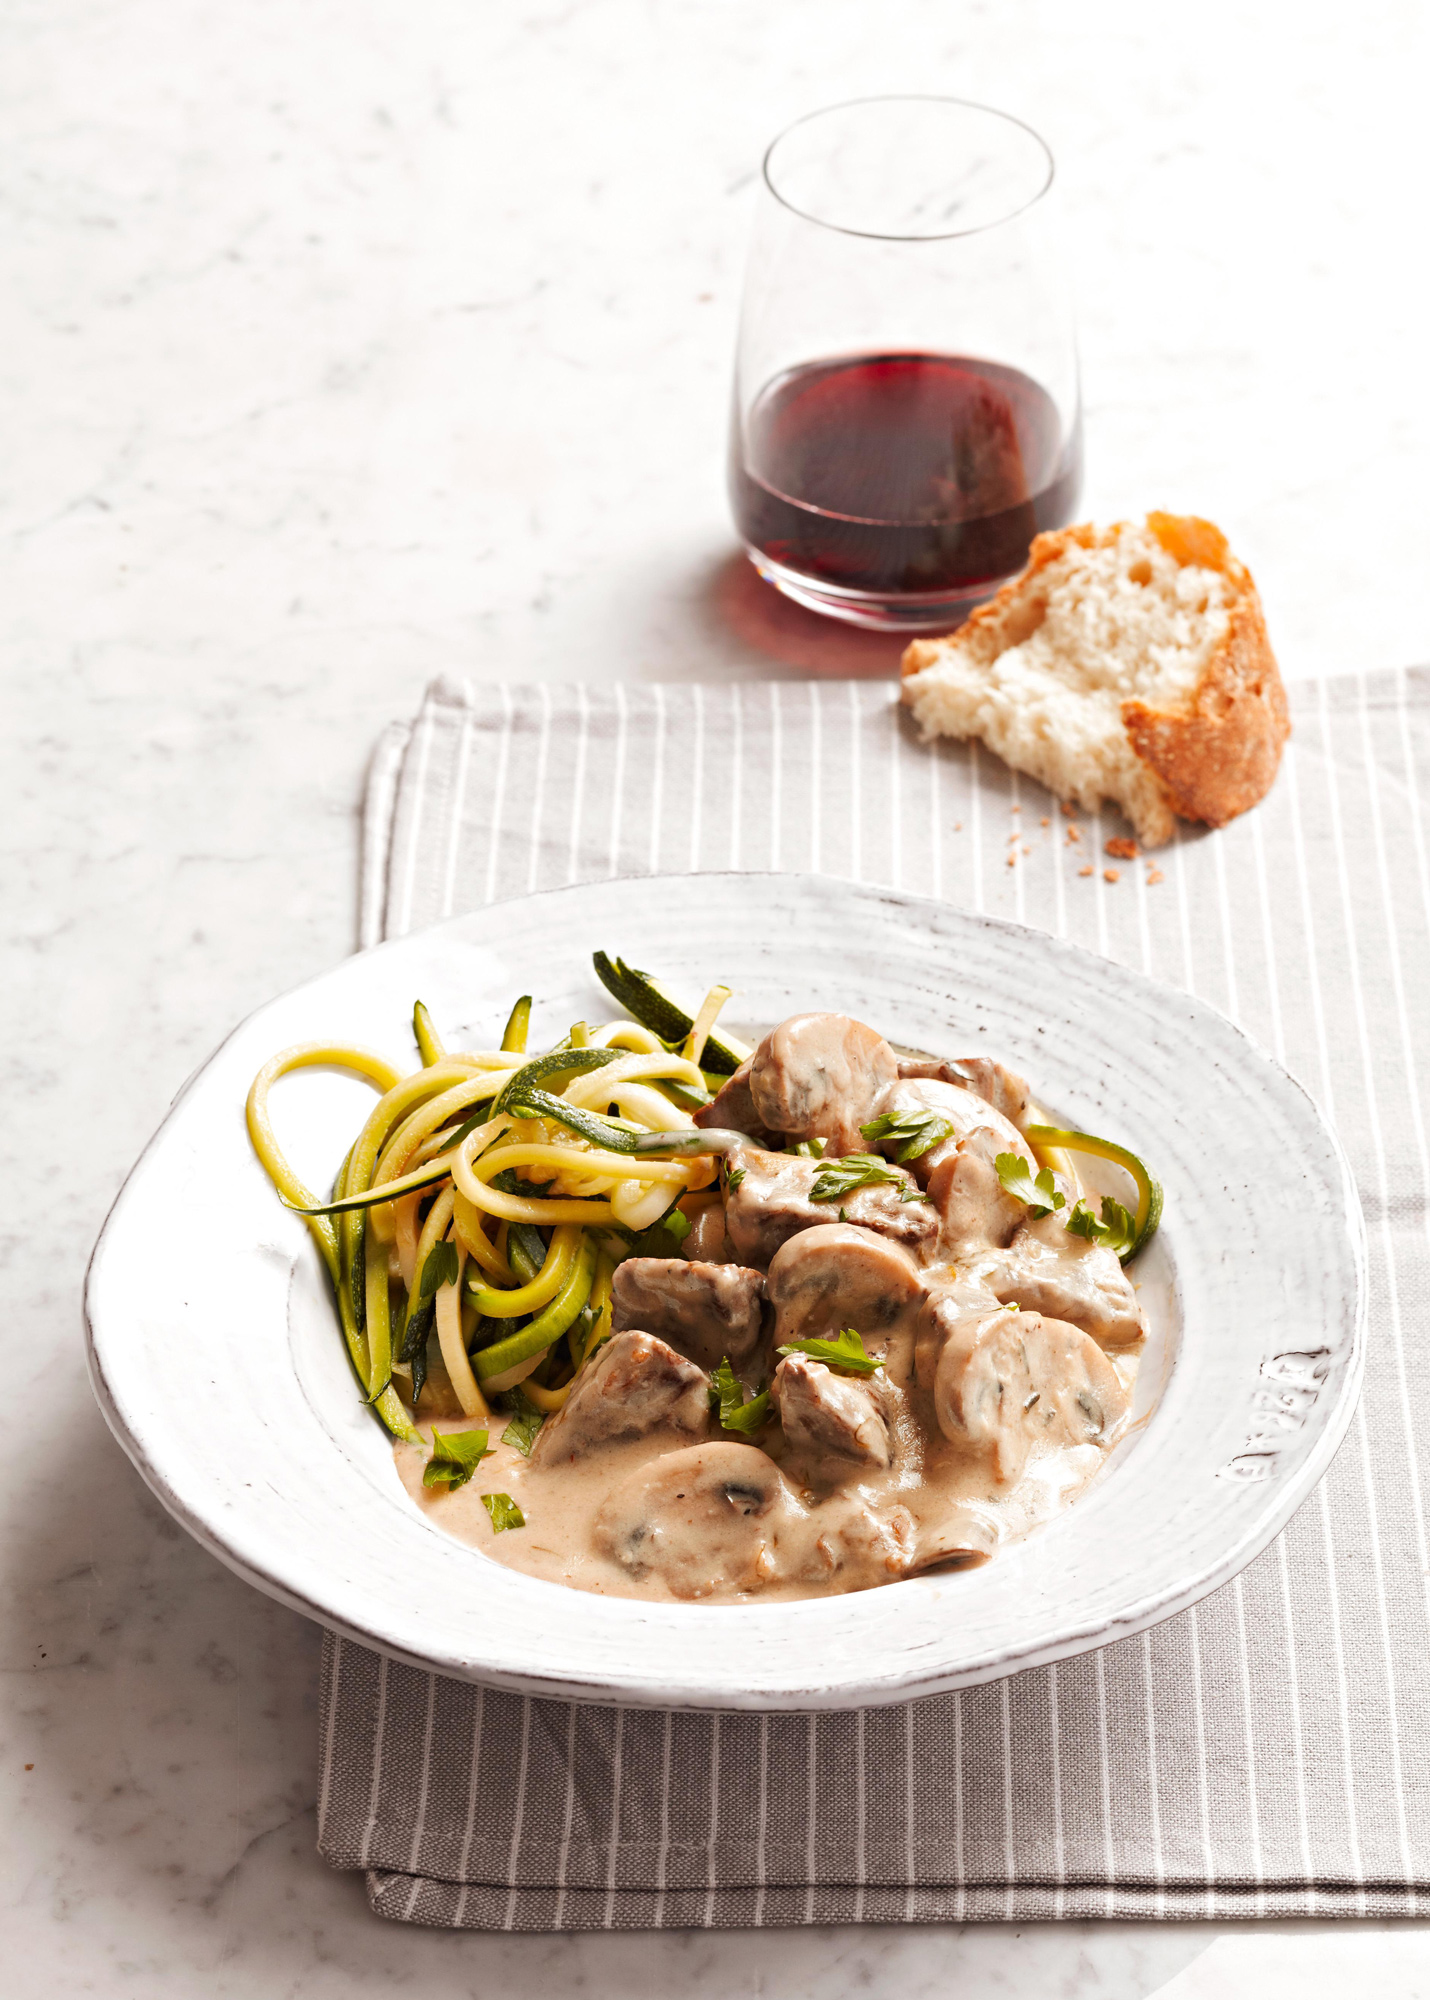 plate of Classic Beef Stroganoff with side of bread and glass of wine